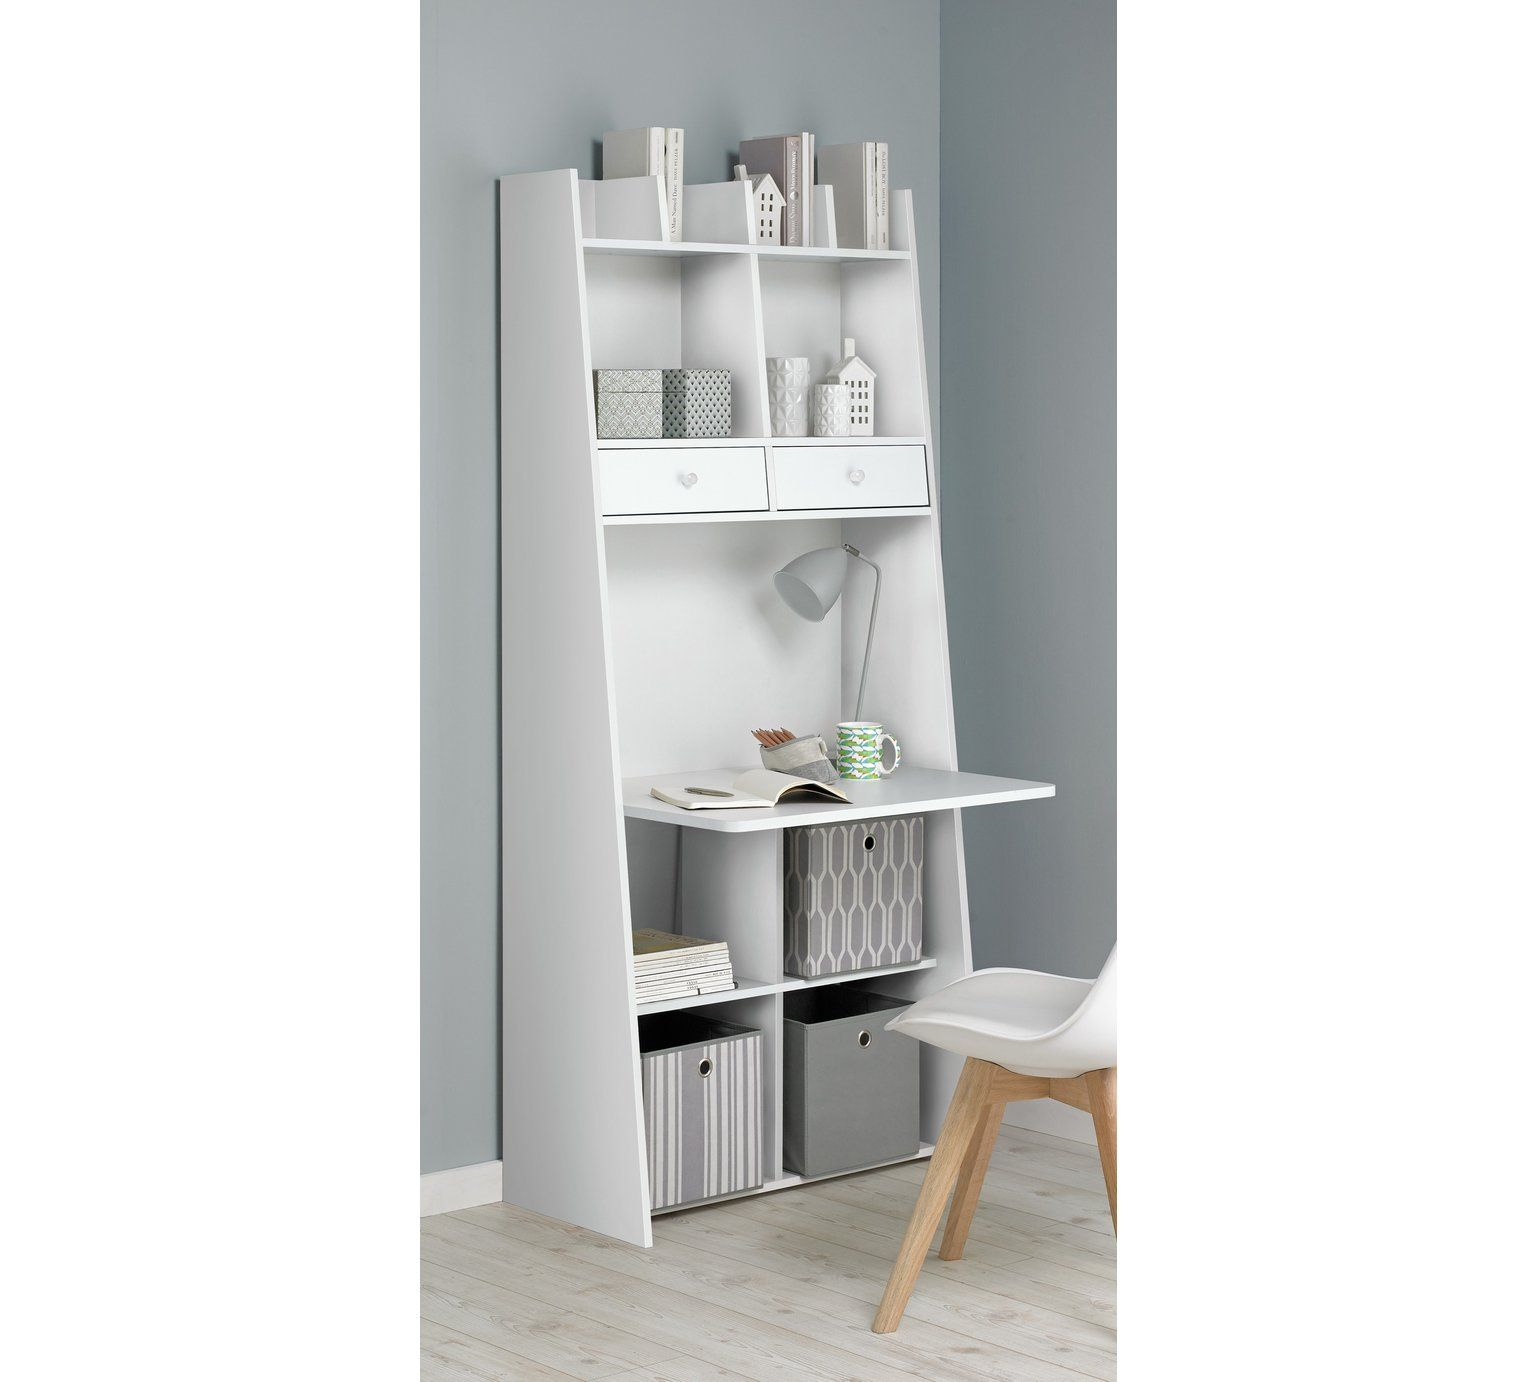 Buy Auckland 2 Drawer Wall Unit Desk White at Argos.co